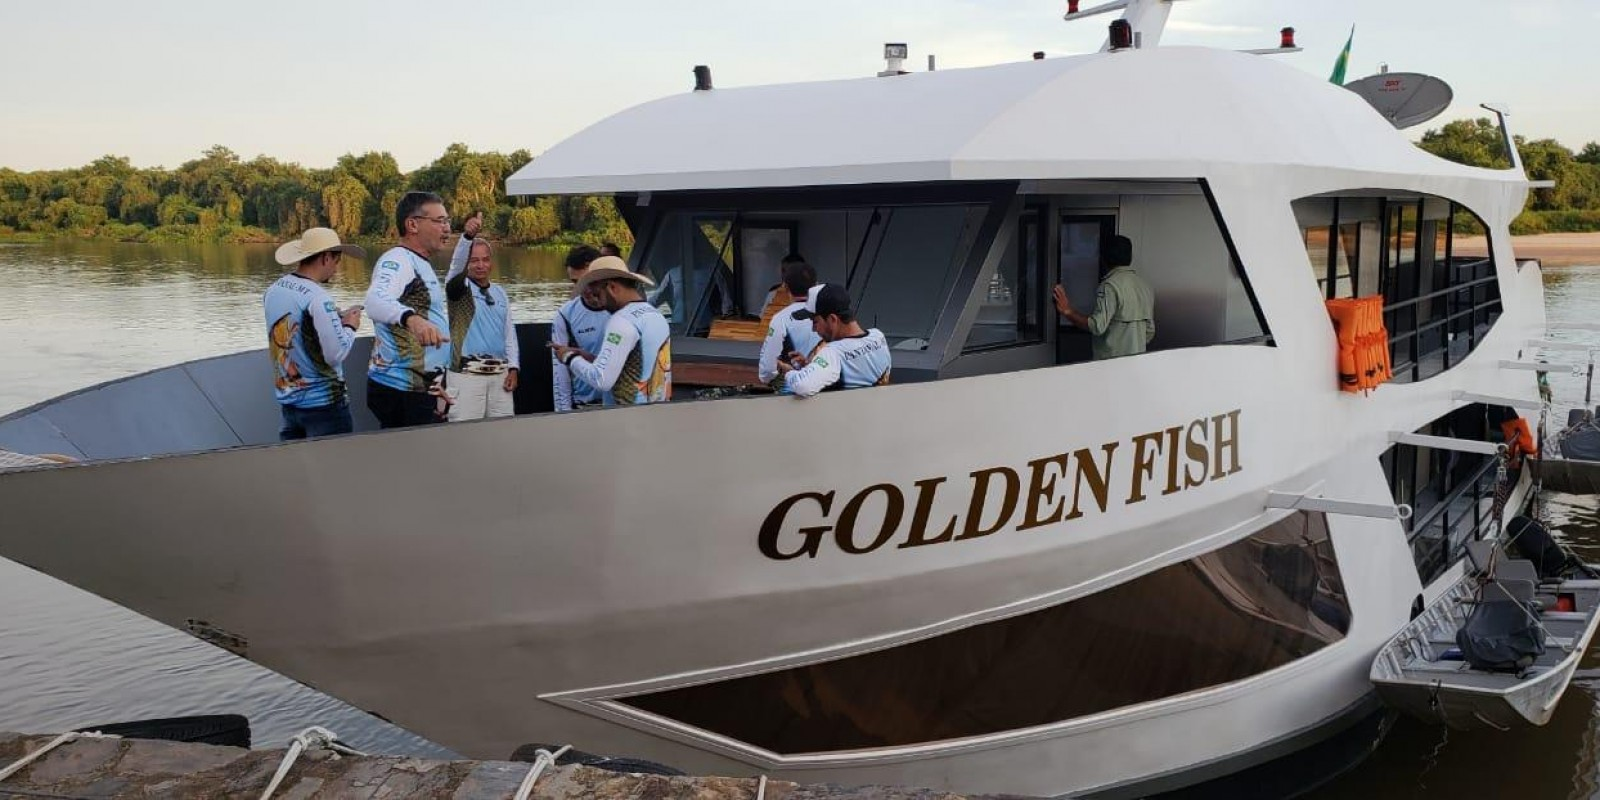 Barco Hotel Golden Fishing - Caceres.